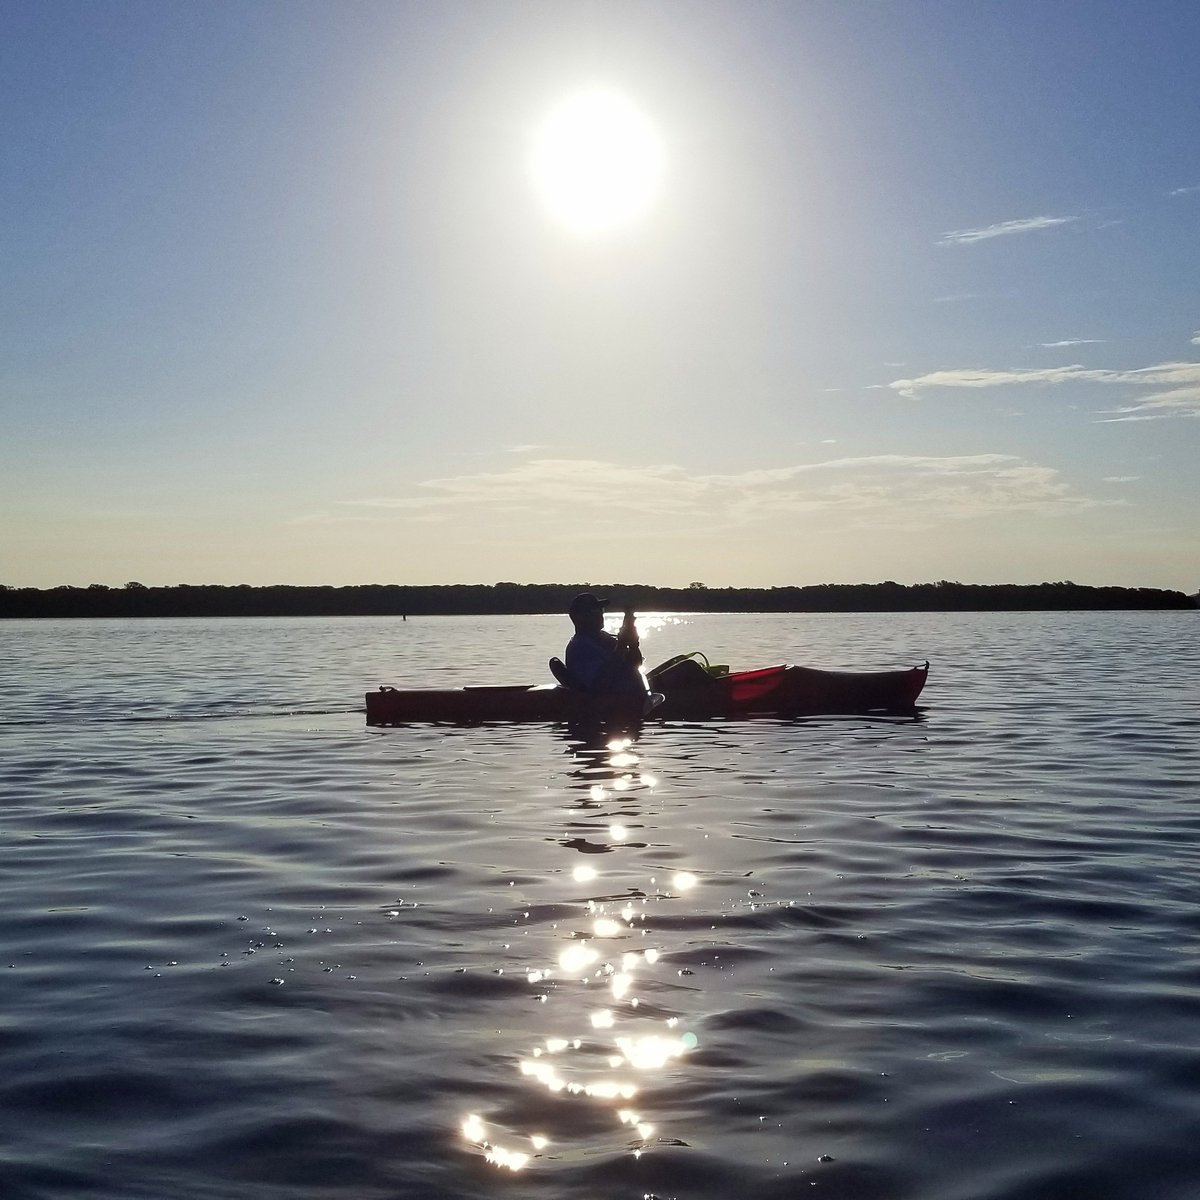 Some days are so beautiful, you just have to stop and #capturethemoment. #sunrise #IslandKayakTourspic.twitter.com/lpZVIQE8a3